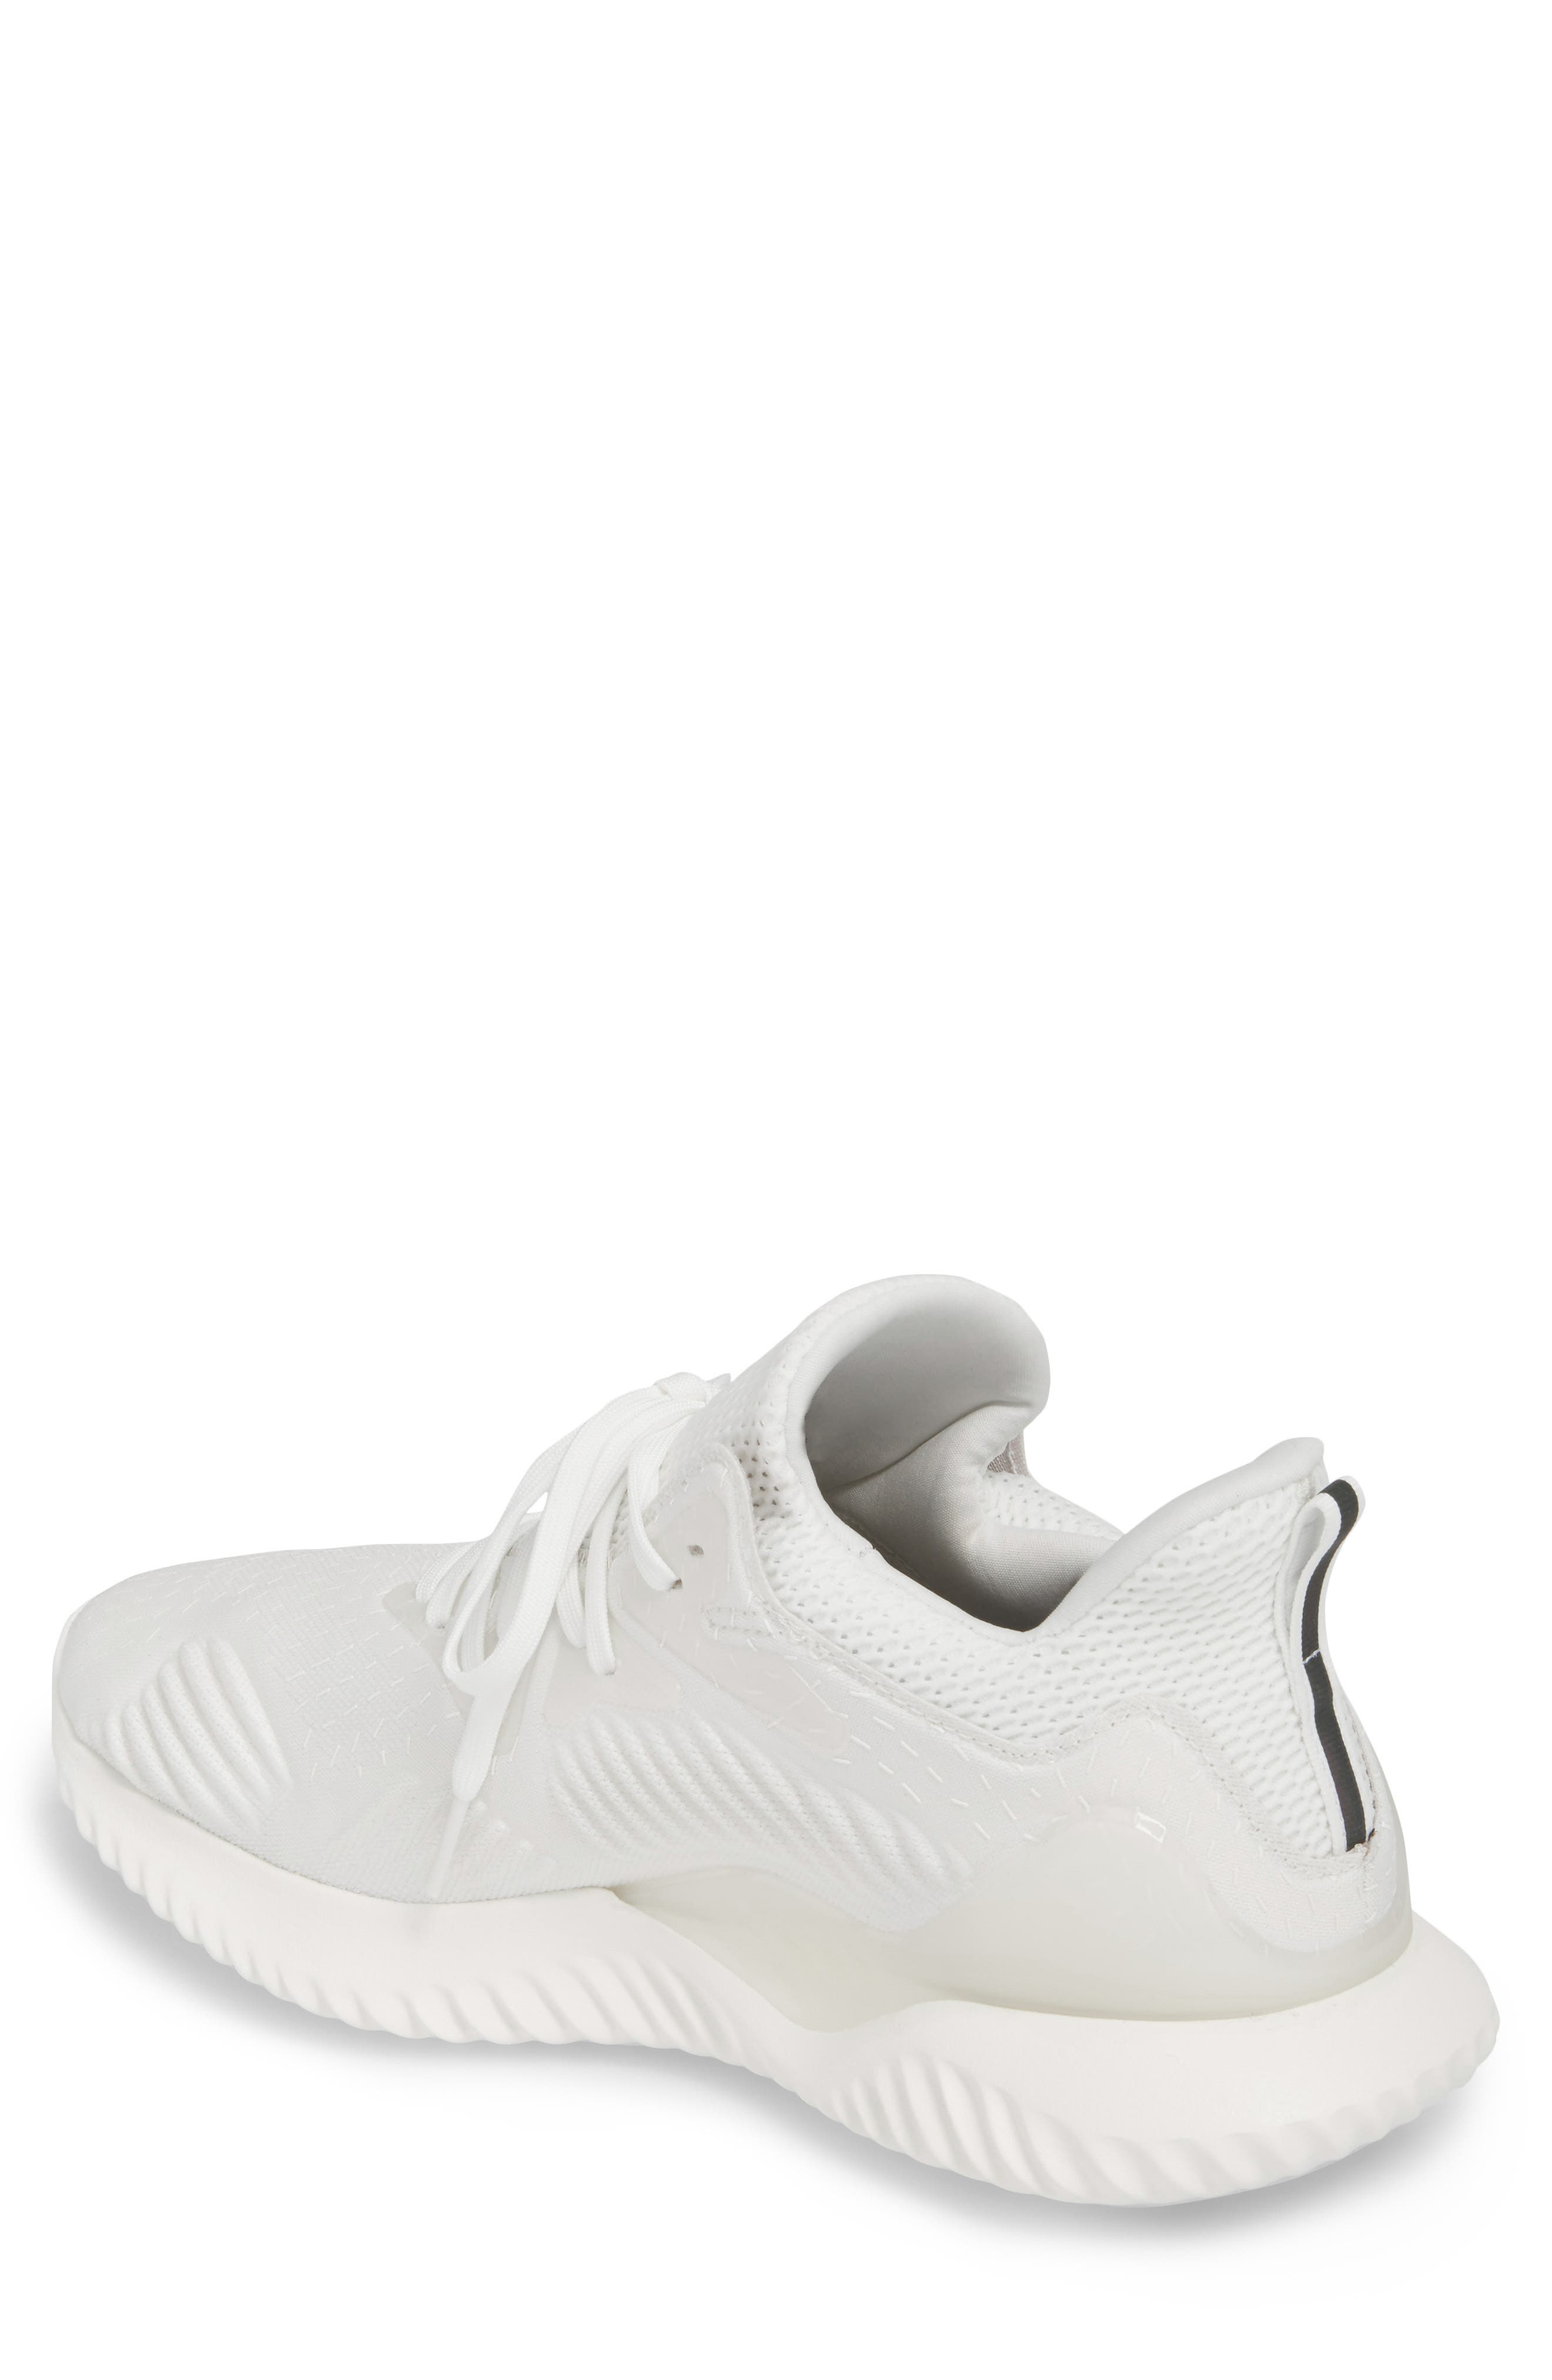 AlphaBounce Beyond Knit Running Shoe,                             Alternate thumbnail 2, color,                             Core Black/ Non-Dyed/ White